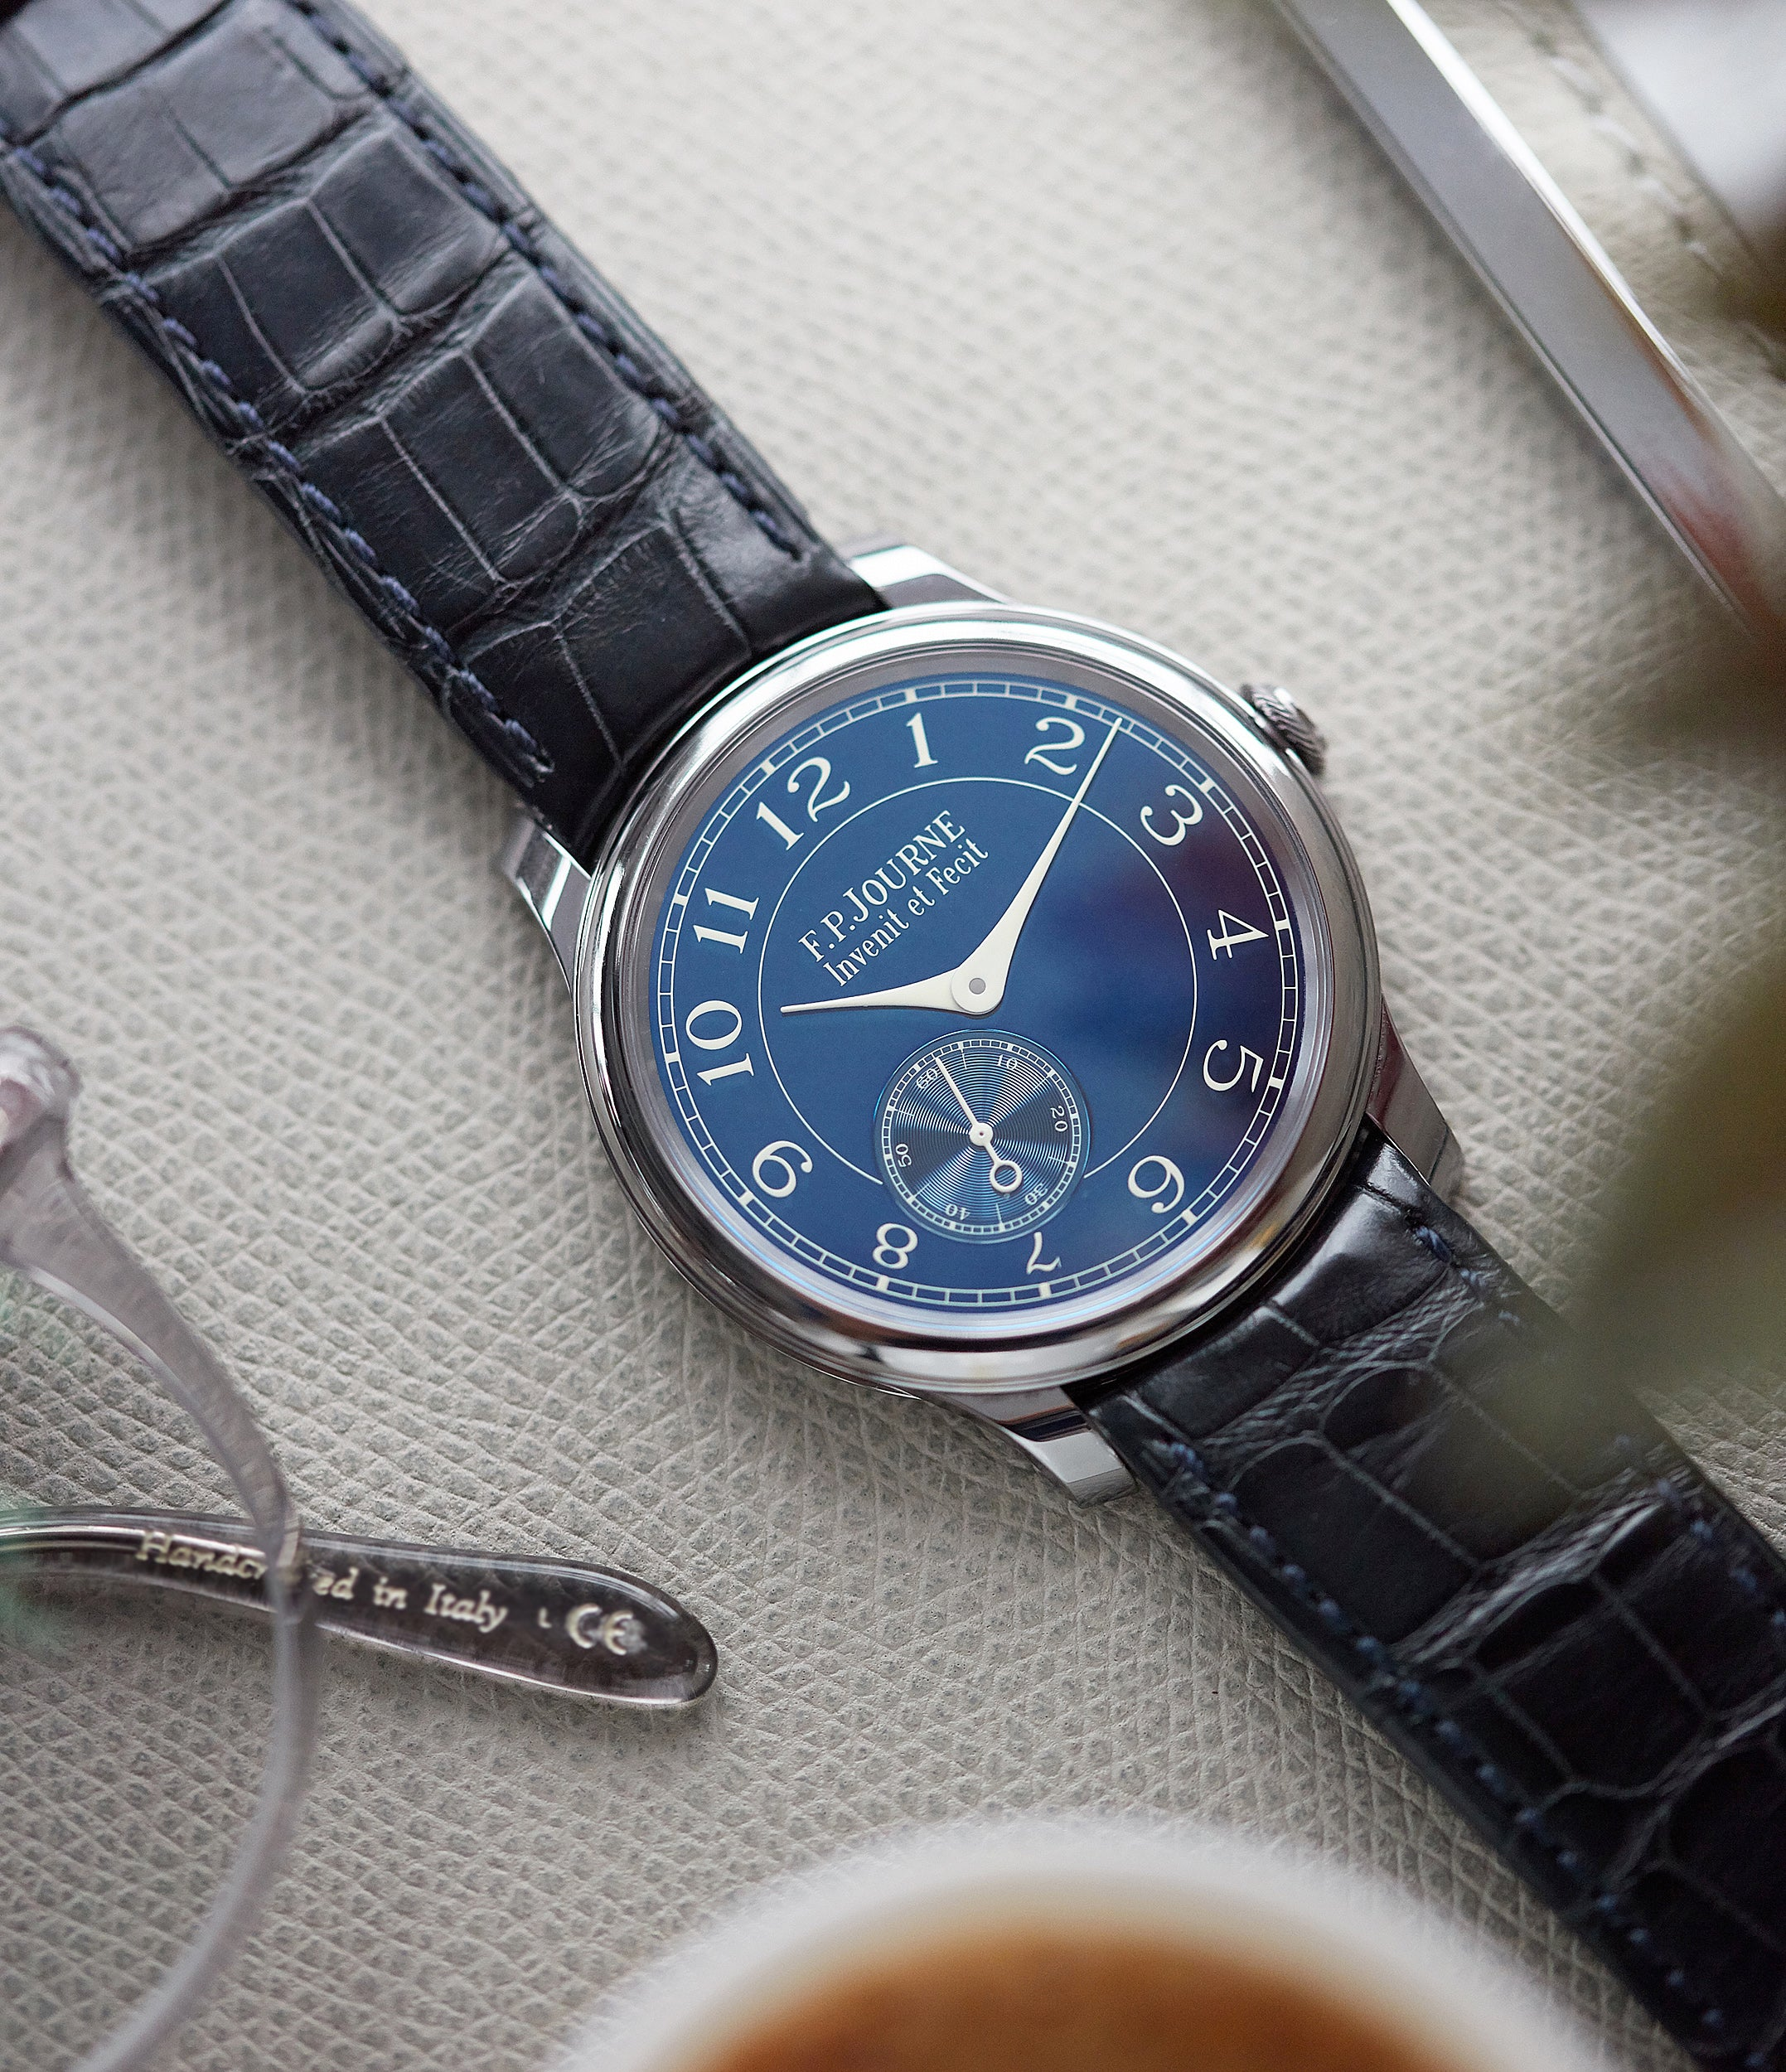 blue dial pre-owned F. P. Journe Chronometre Bleu tantalum rare dress watch for sale online at A Collected Man London approved reseller of independent watchmakers